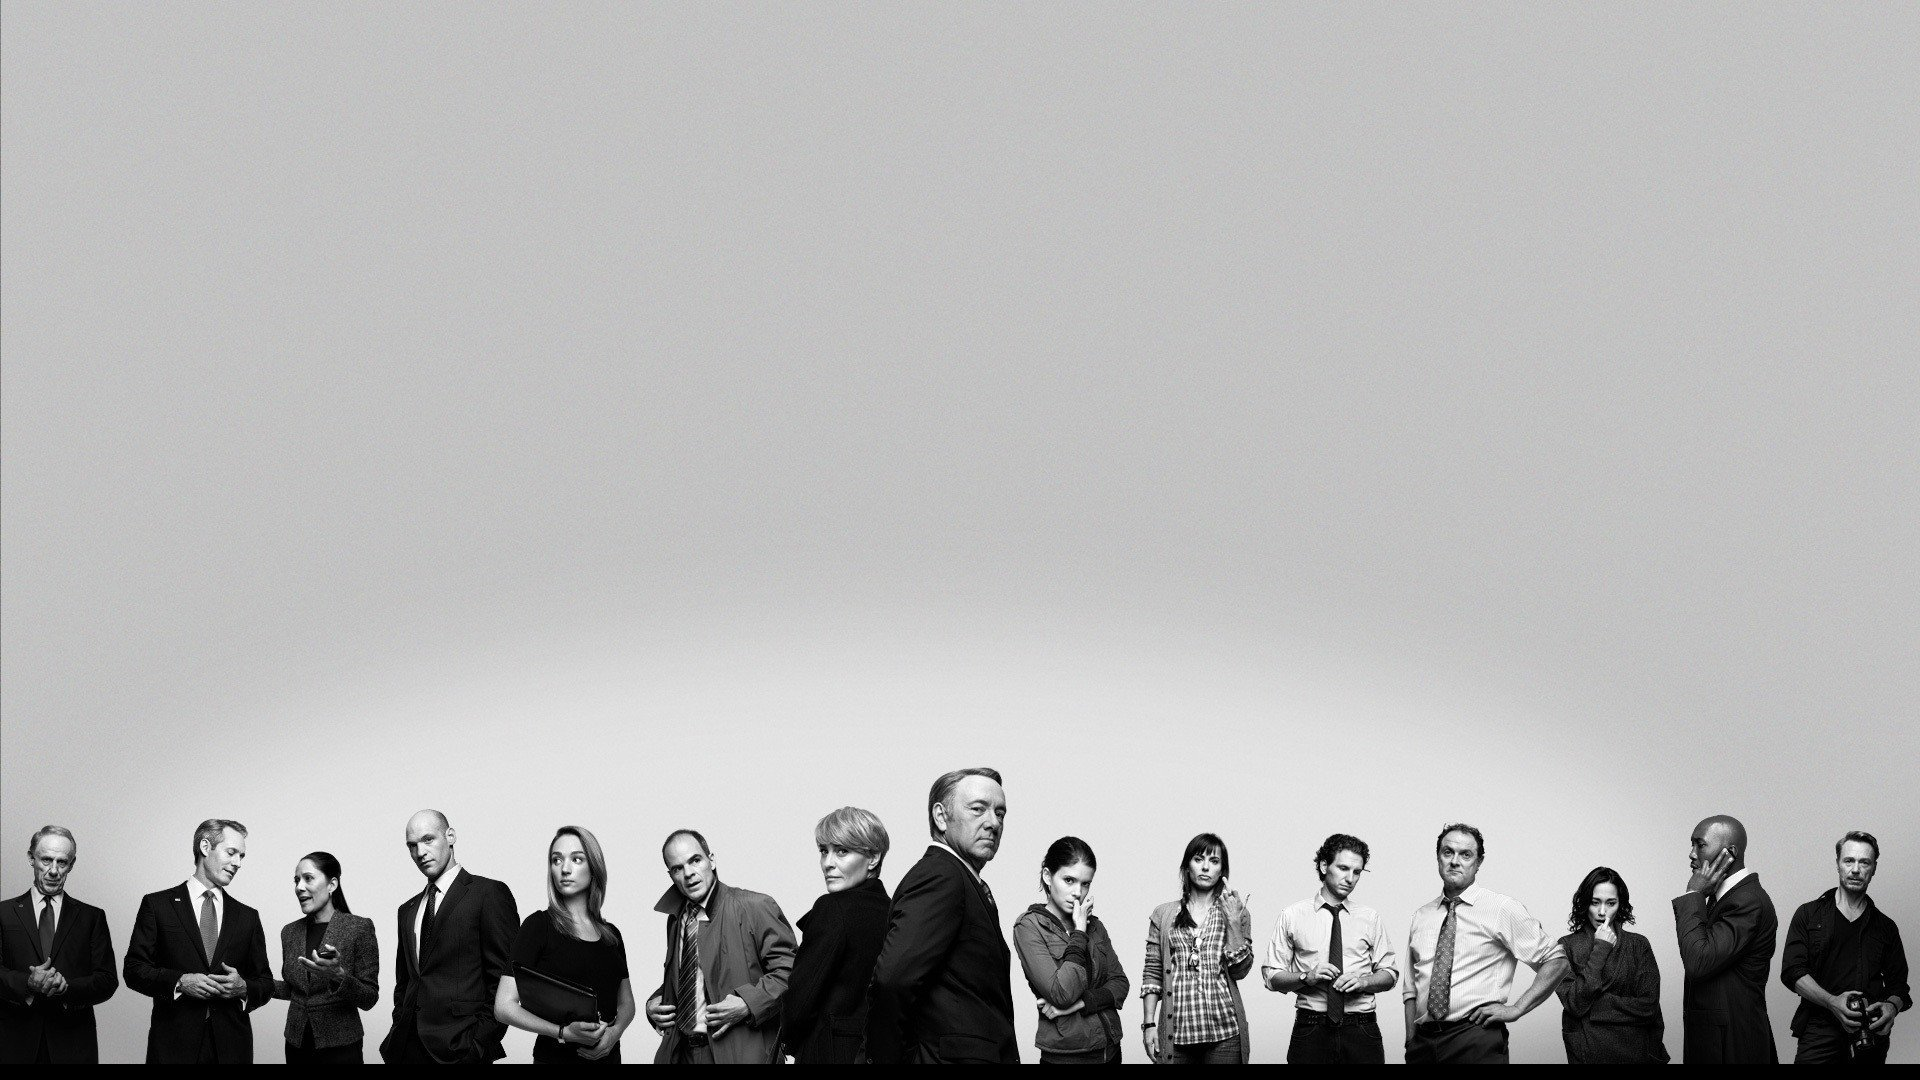 320x240 House Of Cards Apple Iphone Ipod Touch Galaxy Ace Hd 4k